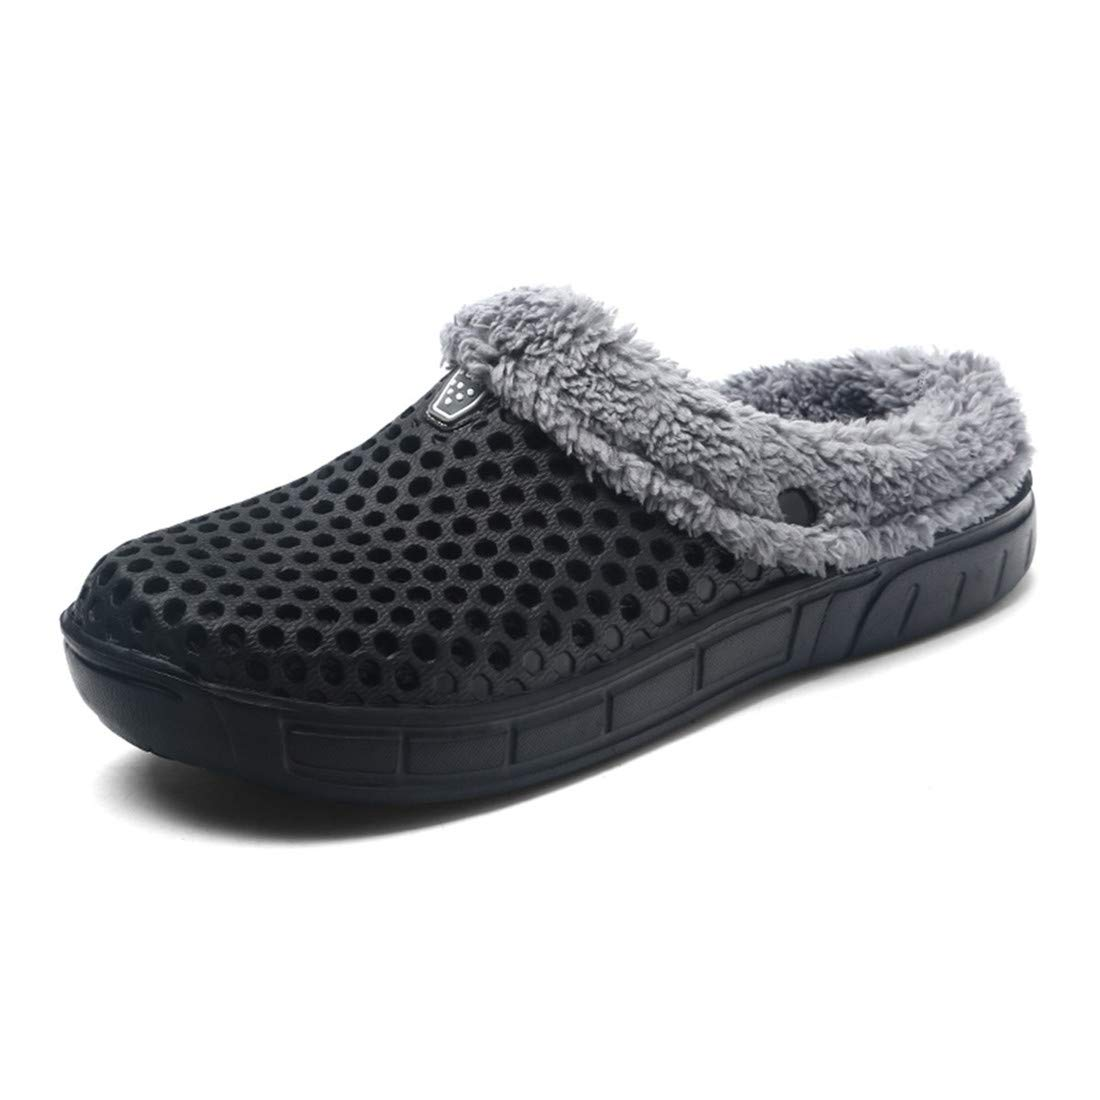 Sunny Holiday Winter Mules Clogs Slippers Men Women Lightweight - Men\'s Indoor Garden Shoes Women\'s Warm Fur Lined House Shoes